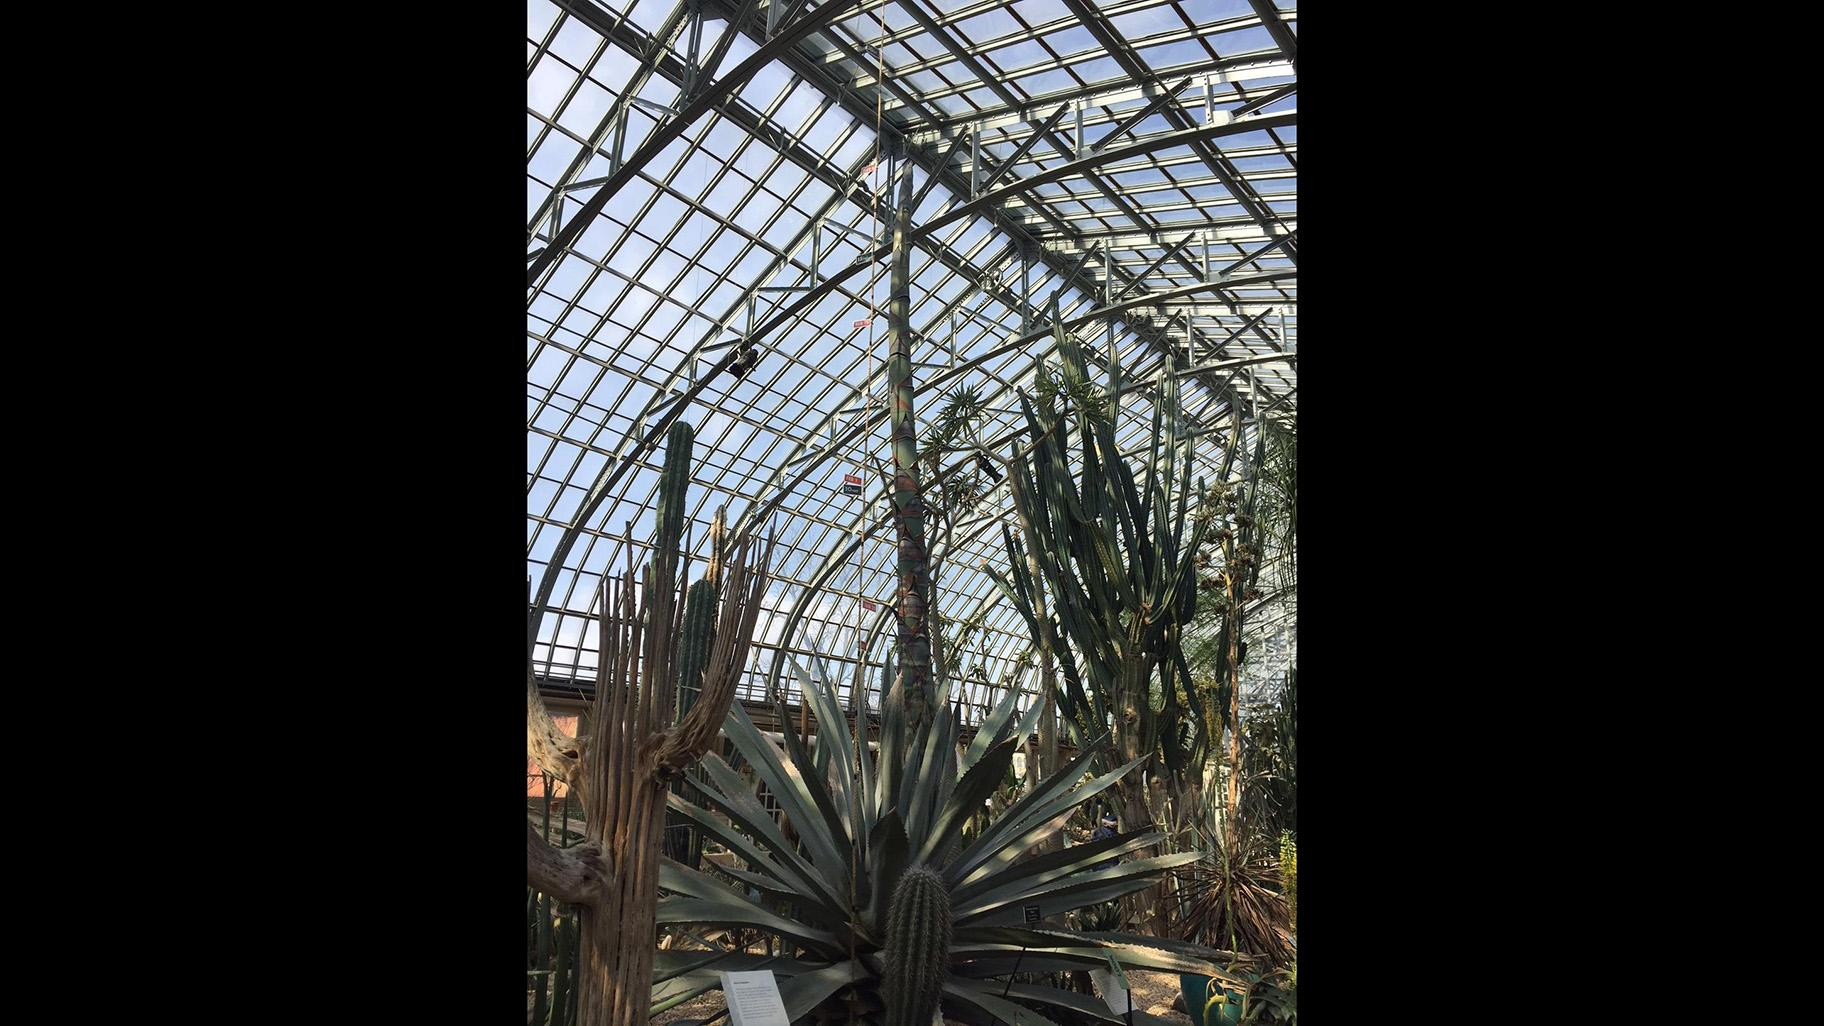 The century plant measured 17 feet, 6 inches tall on March 4, 2019.